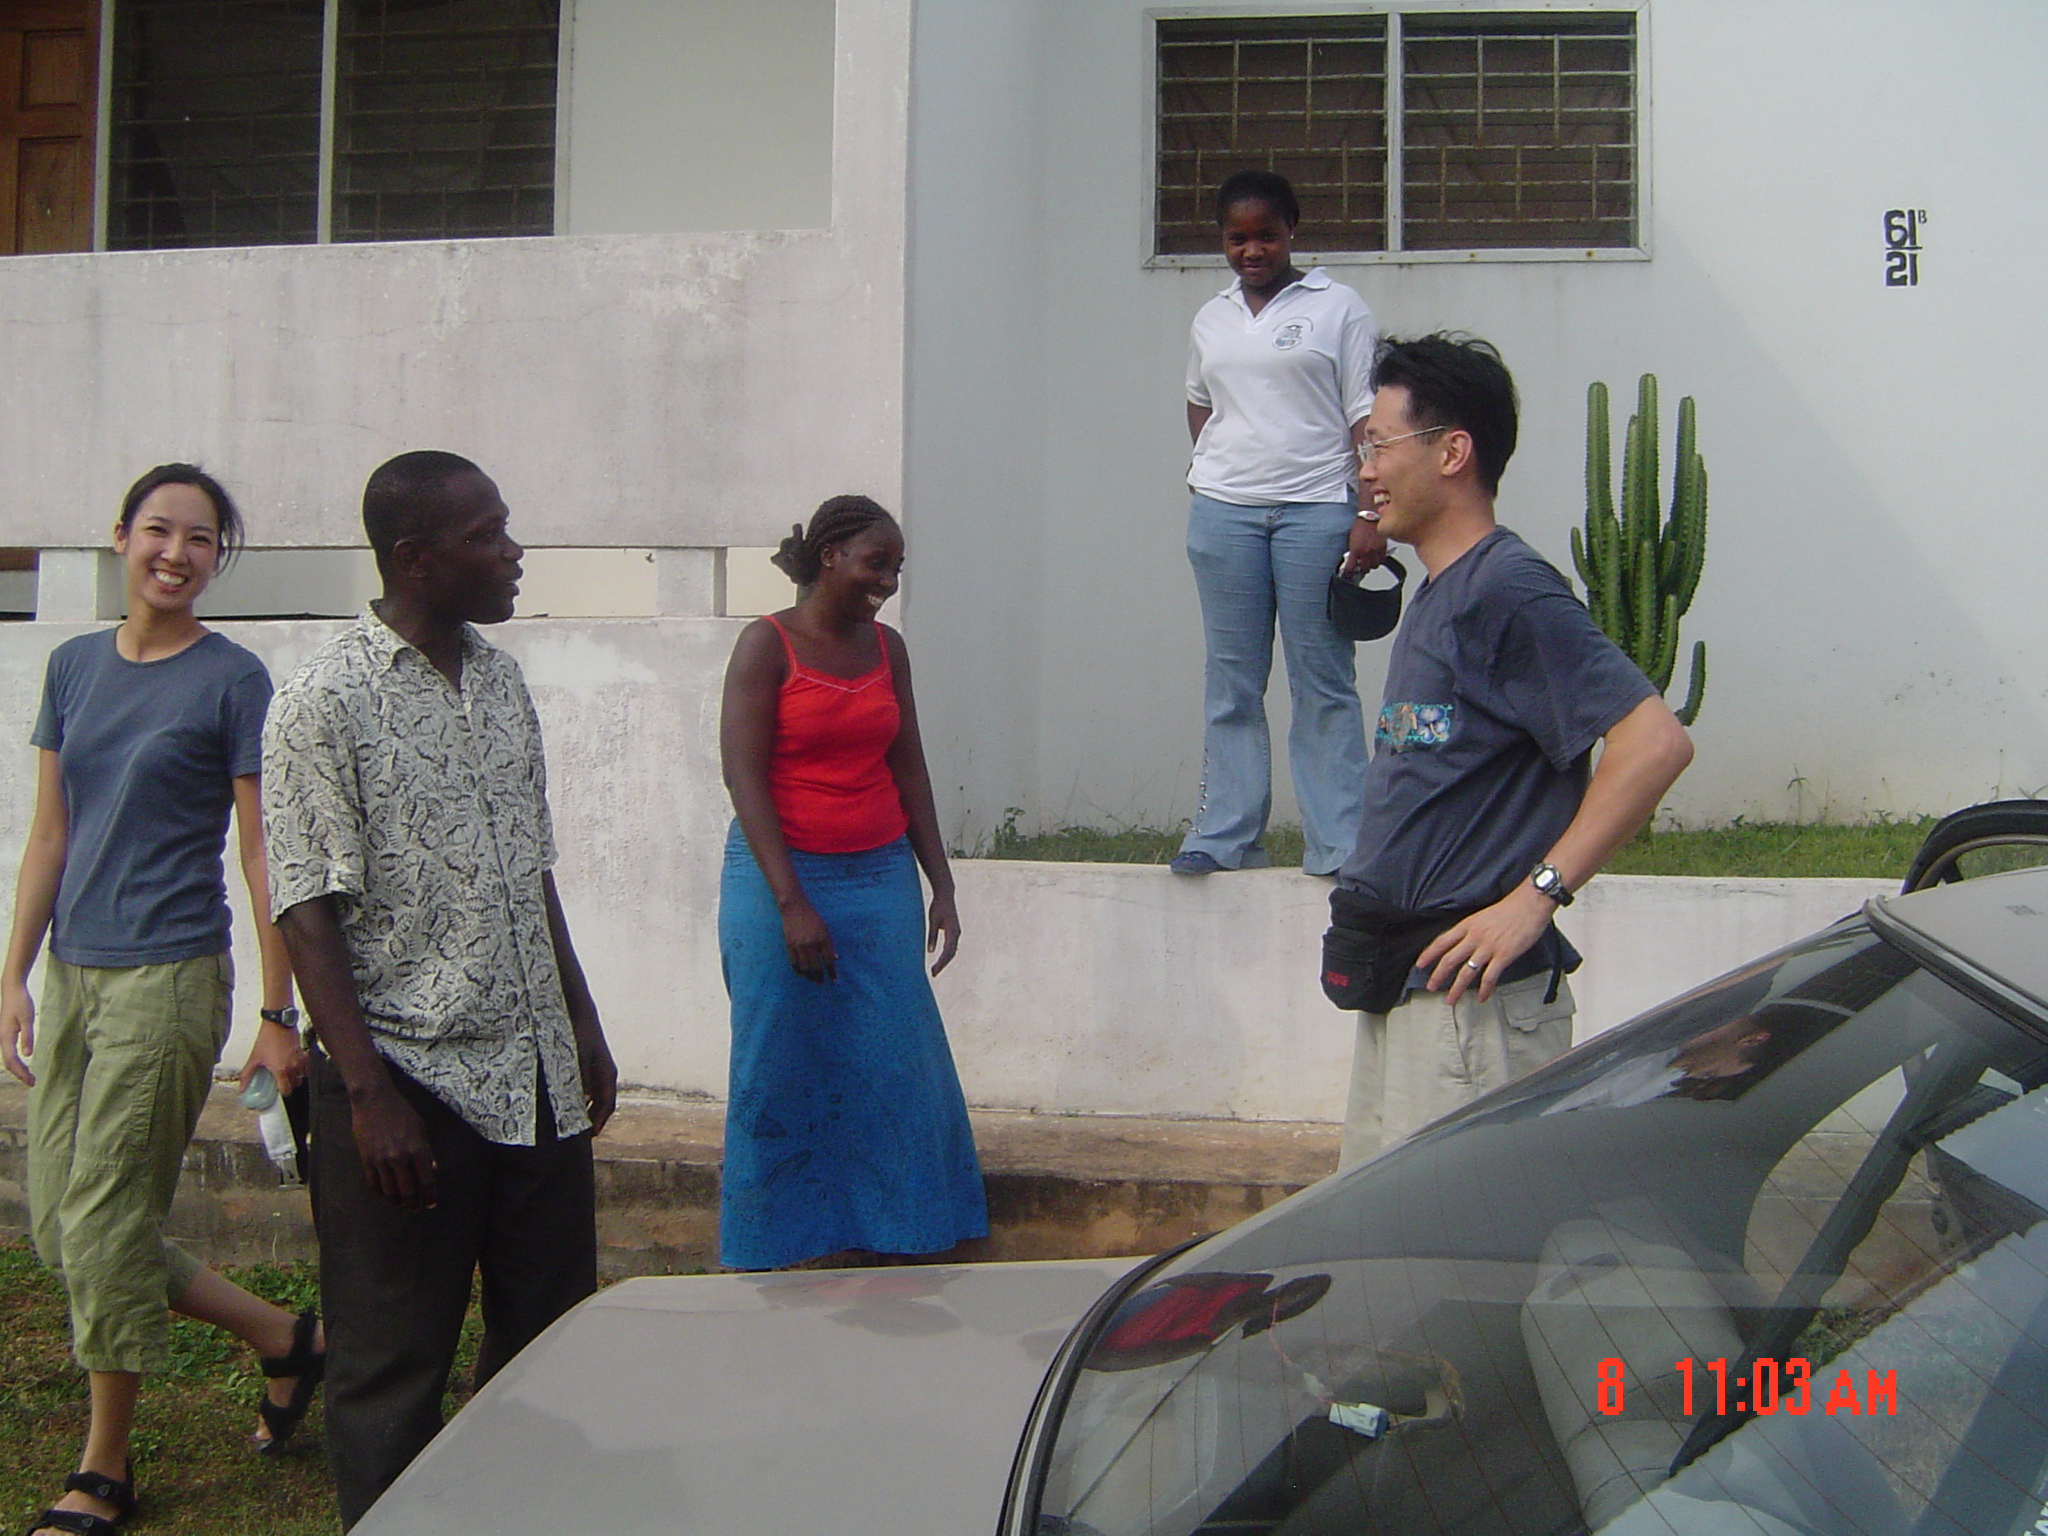 Husband and wife team, Drs. Davis Lee (Peds) and Janet Yang (Internist)from Cedars Sinai Hospital, Los Angeles, saying ther good-byes to Francis Obeng,Lucy Cofie [EAUMF Administrator]and Mercy Cofie in Elmina after volunteering in the EAUMF Program for 1 month. [December 2005].